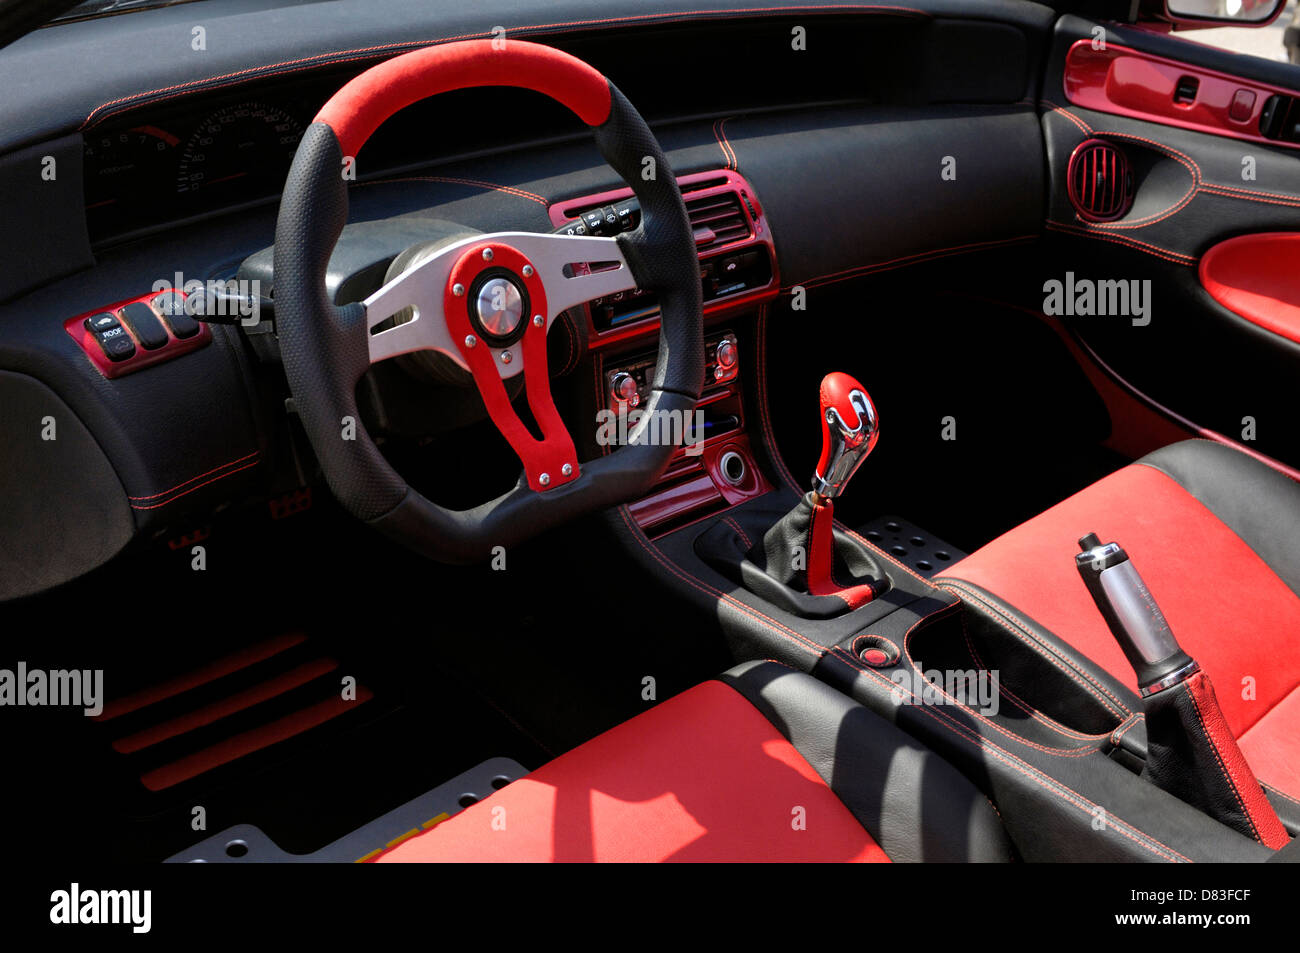 Muscle Car Wallpaper Pack Ownload Custom Car Red And Black Leather Interior Stock Photo